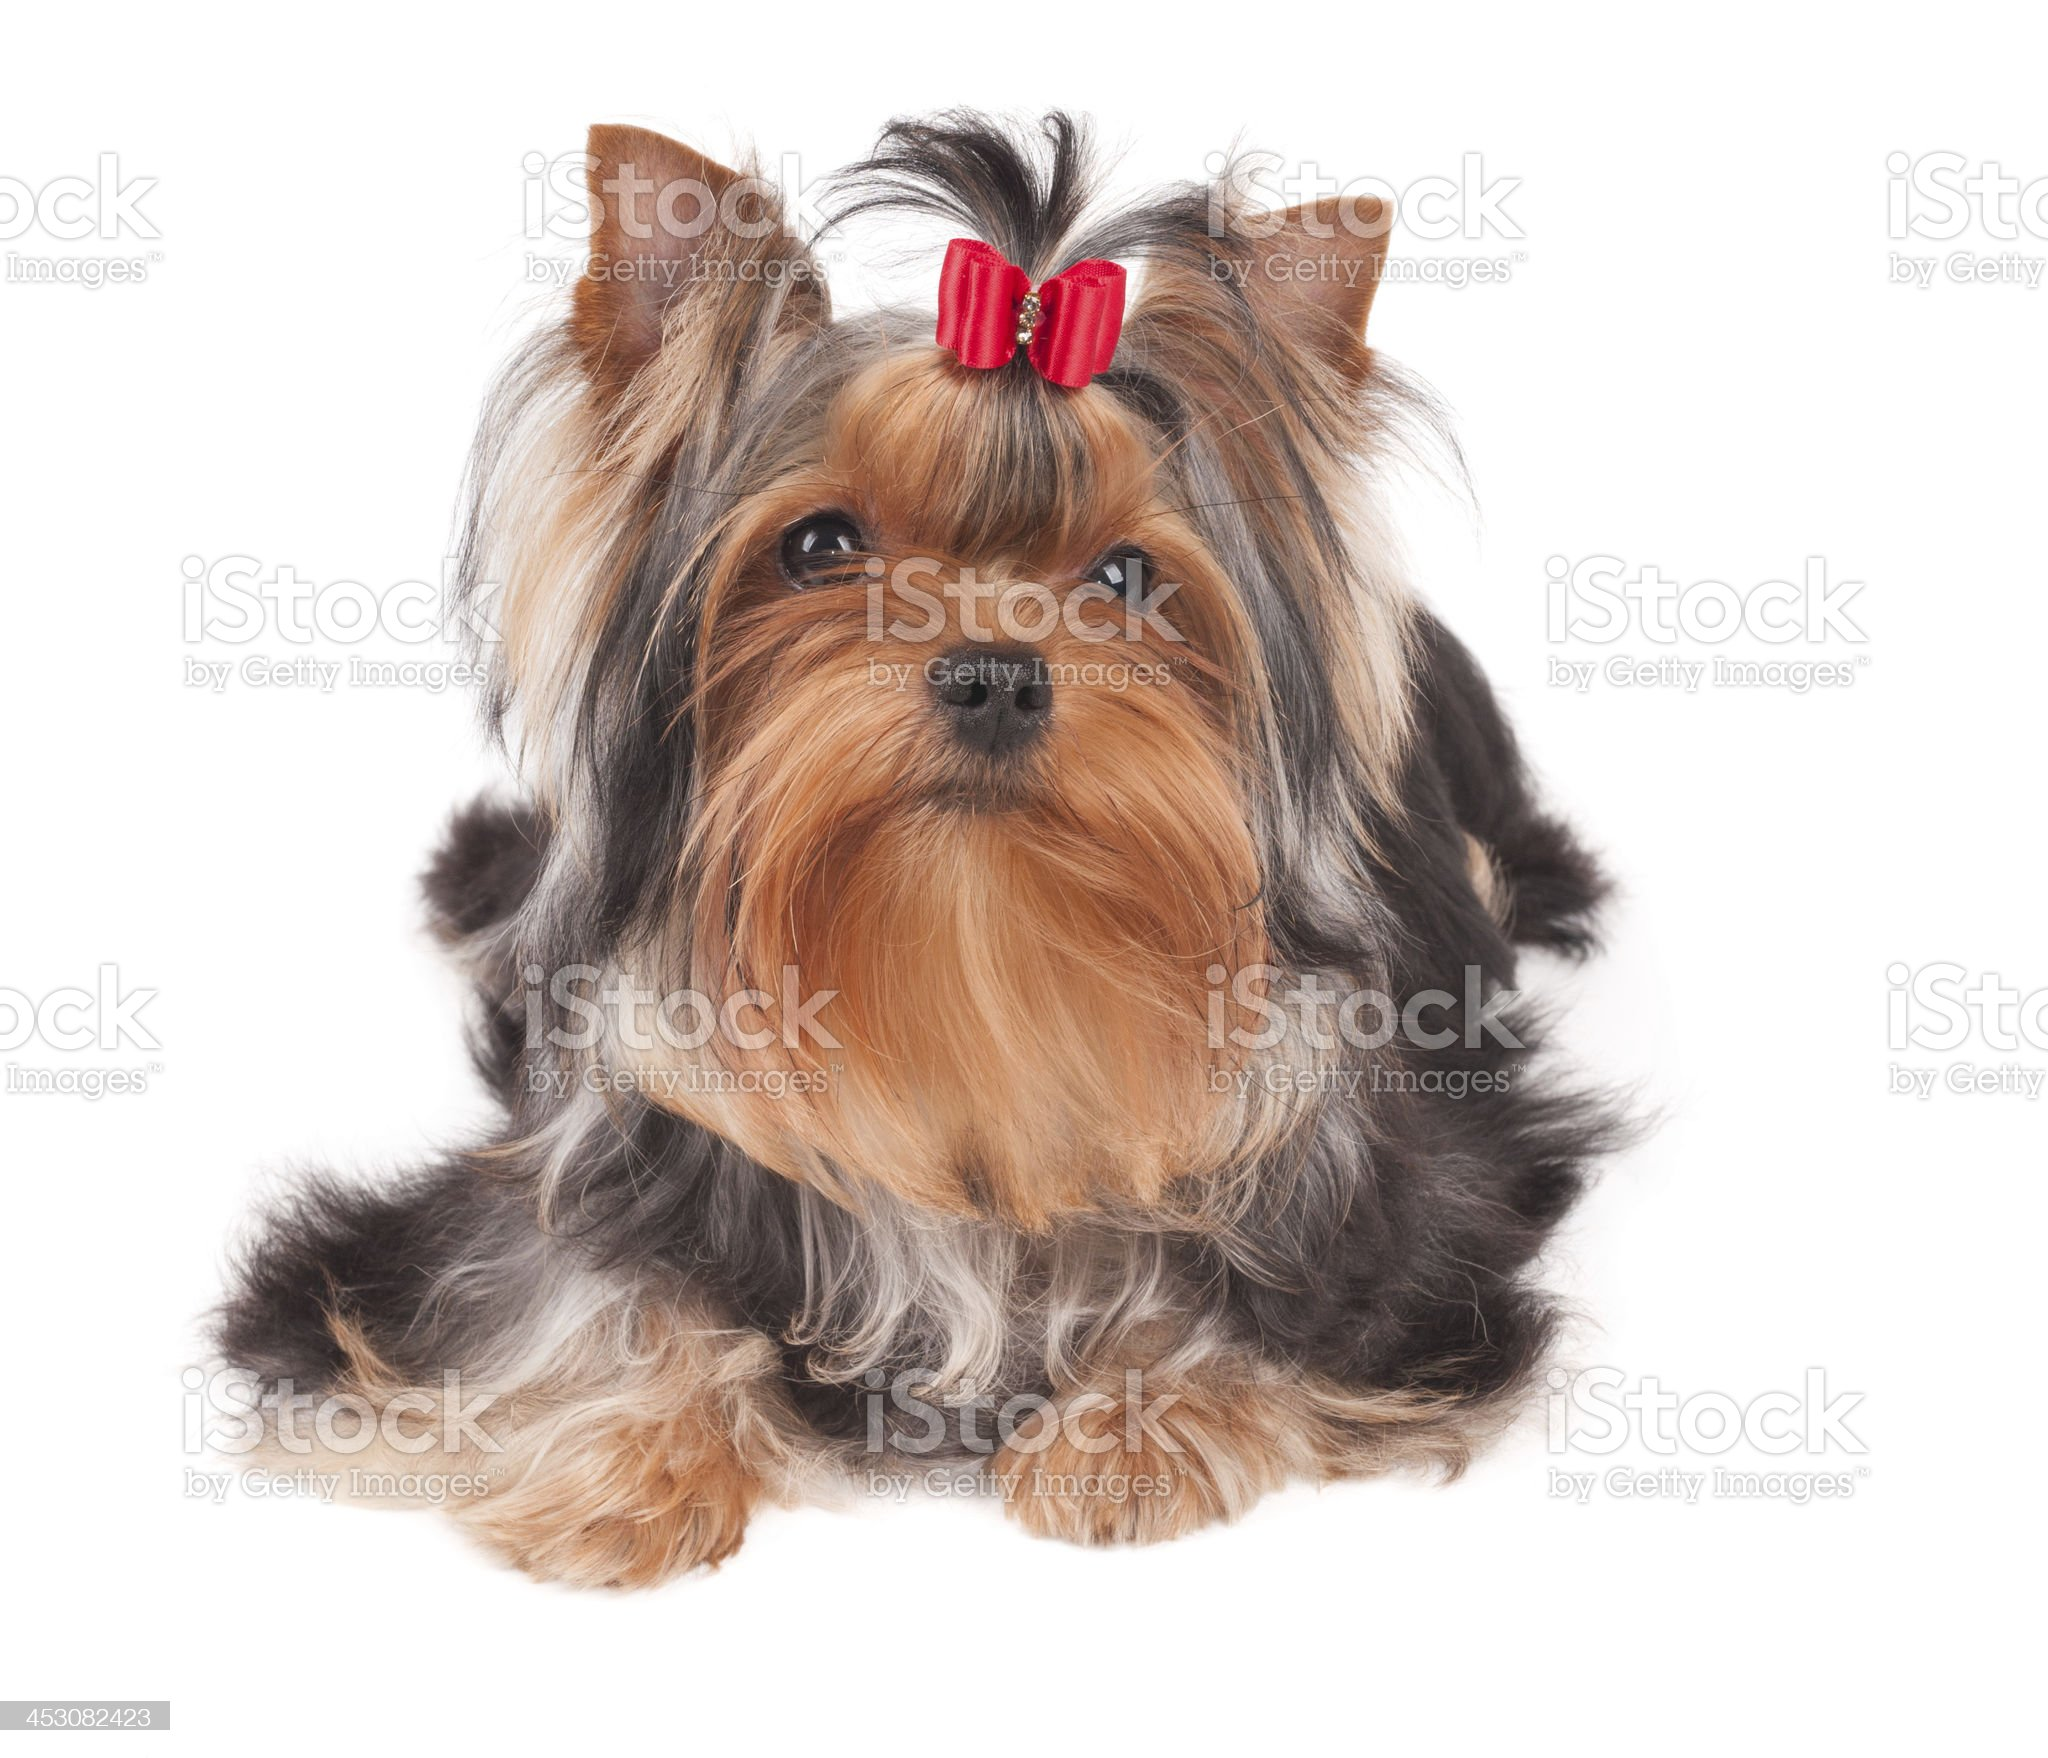 Yorkshire Terrier with red bow royalty-free stock photo